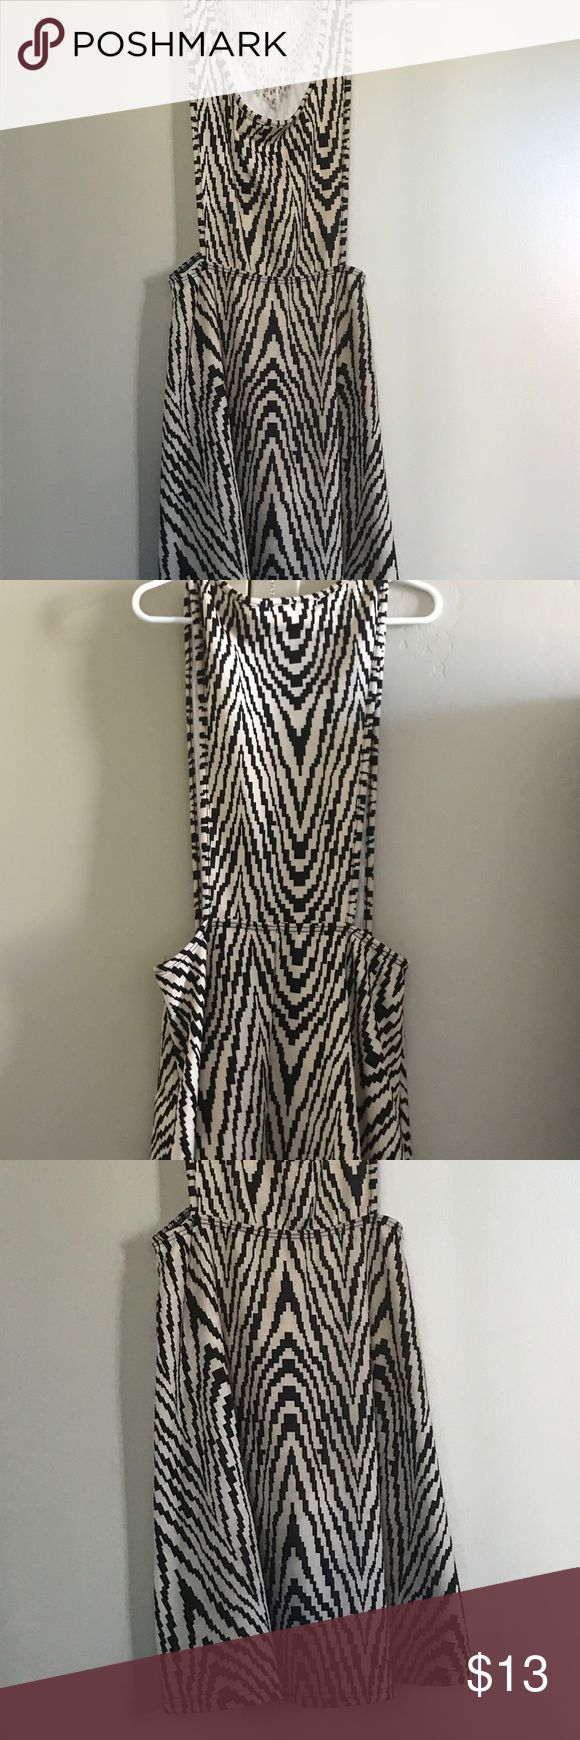 Cocktail Casual Dress Sz Small Beige Black Print Beige Black Print Dress. Fun, flowy, sexy. Dress up or down with a sweater, long sleeve for winter or nothing on the bottom for a night out to a bar or club. Size Small. Stretchy material. Worn once. ( Necklace not included ) Dresses Midi